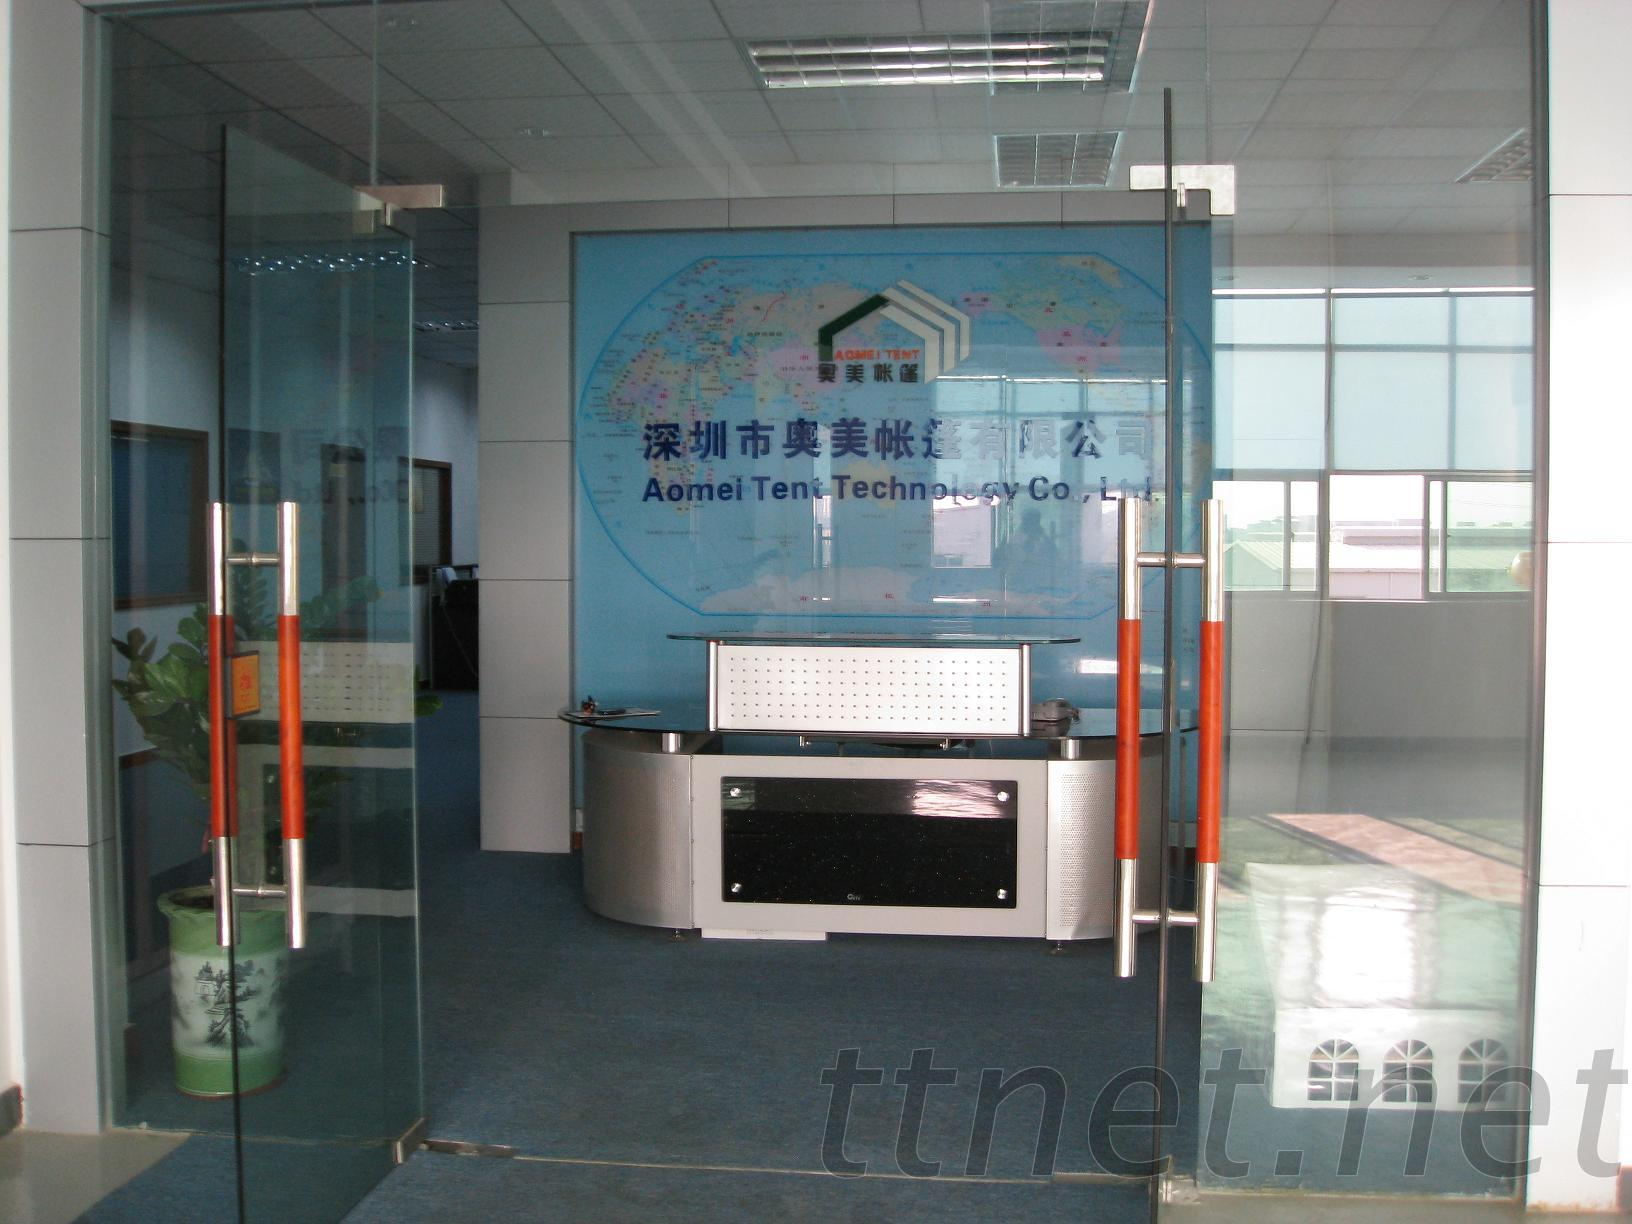 Aomei Tent Technology Co., Ltd